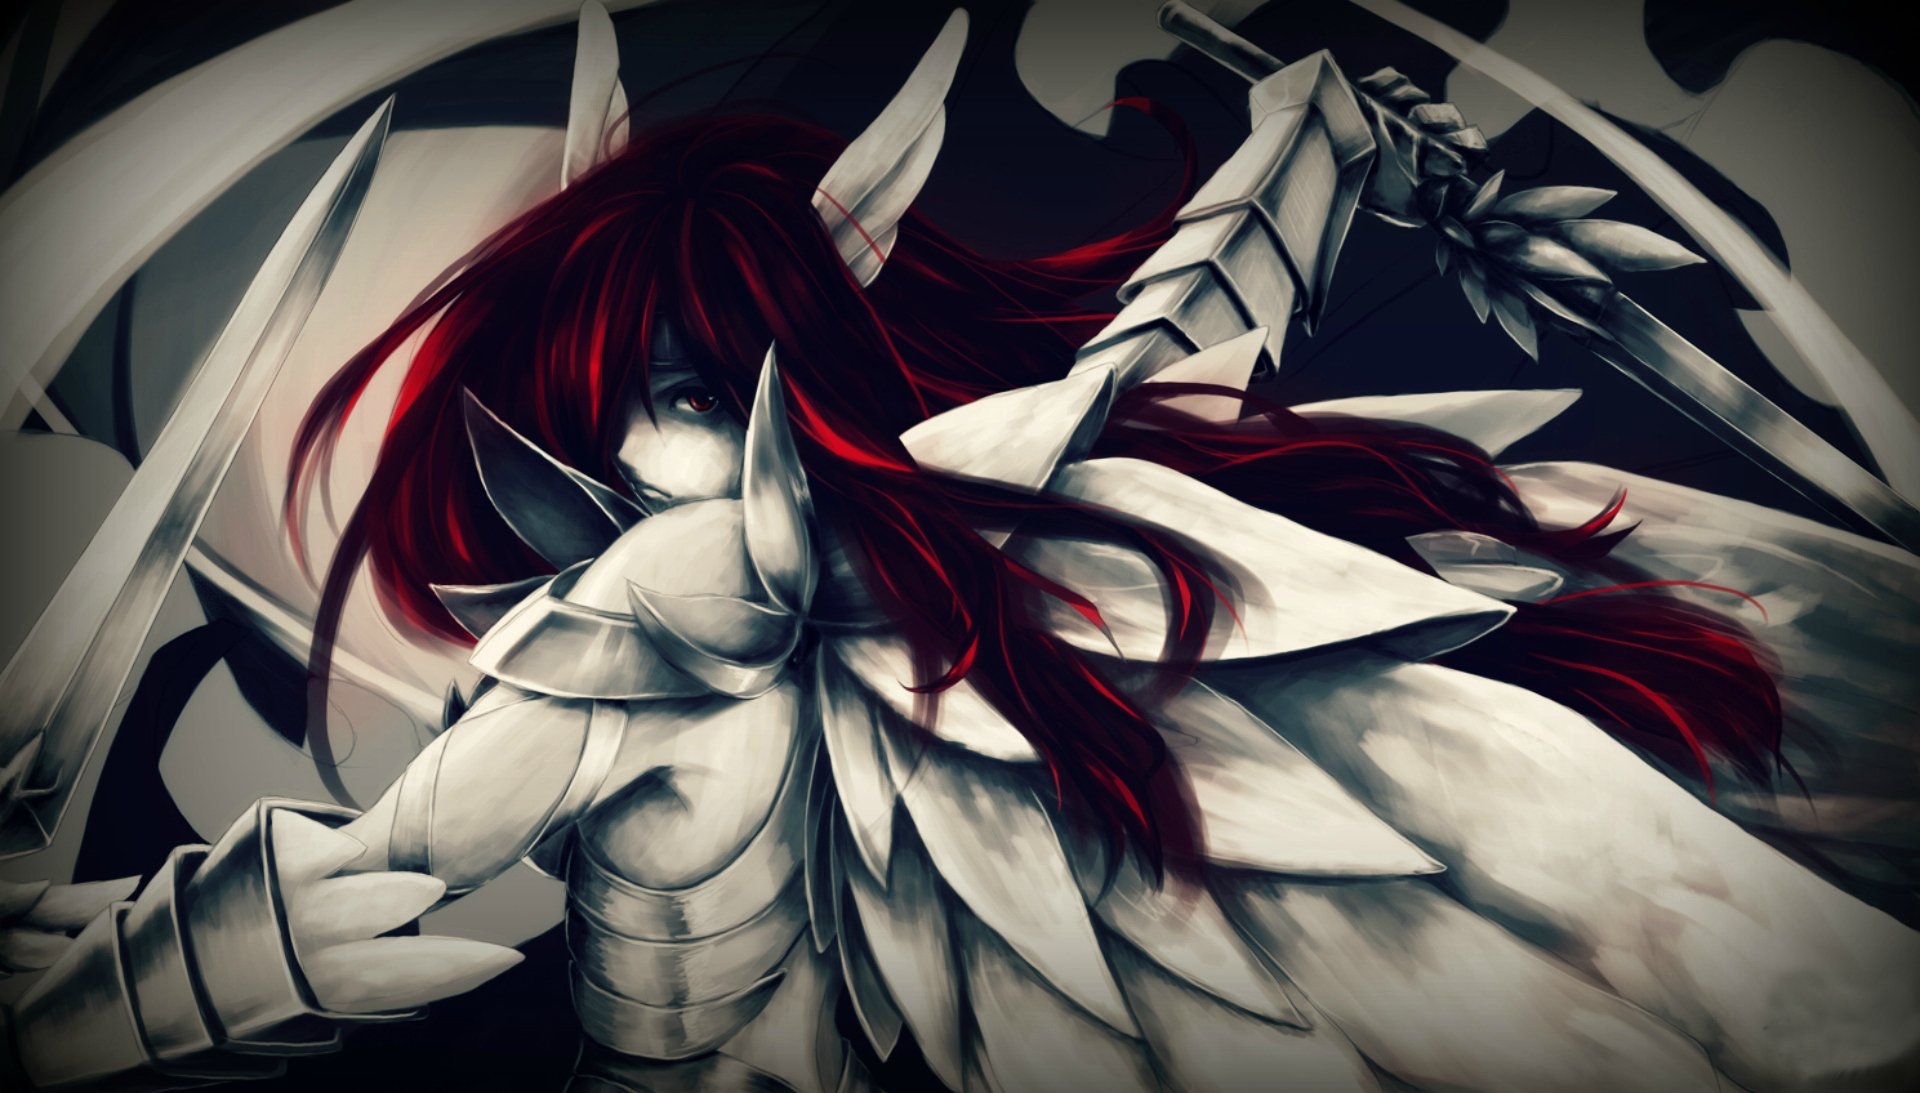 254 Erza Scarlet HD Wallpapers | Backgrounds - Wallpaper Abyss